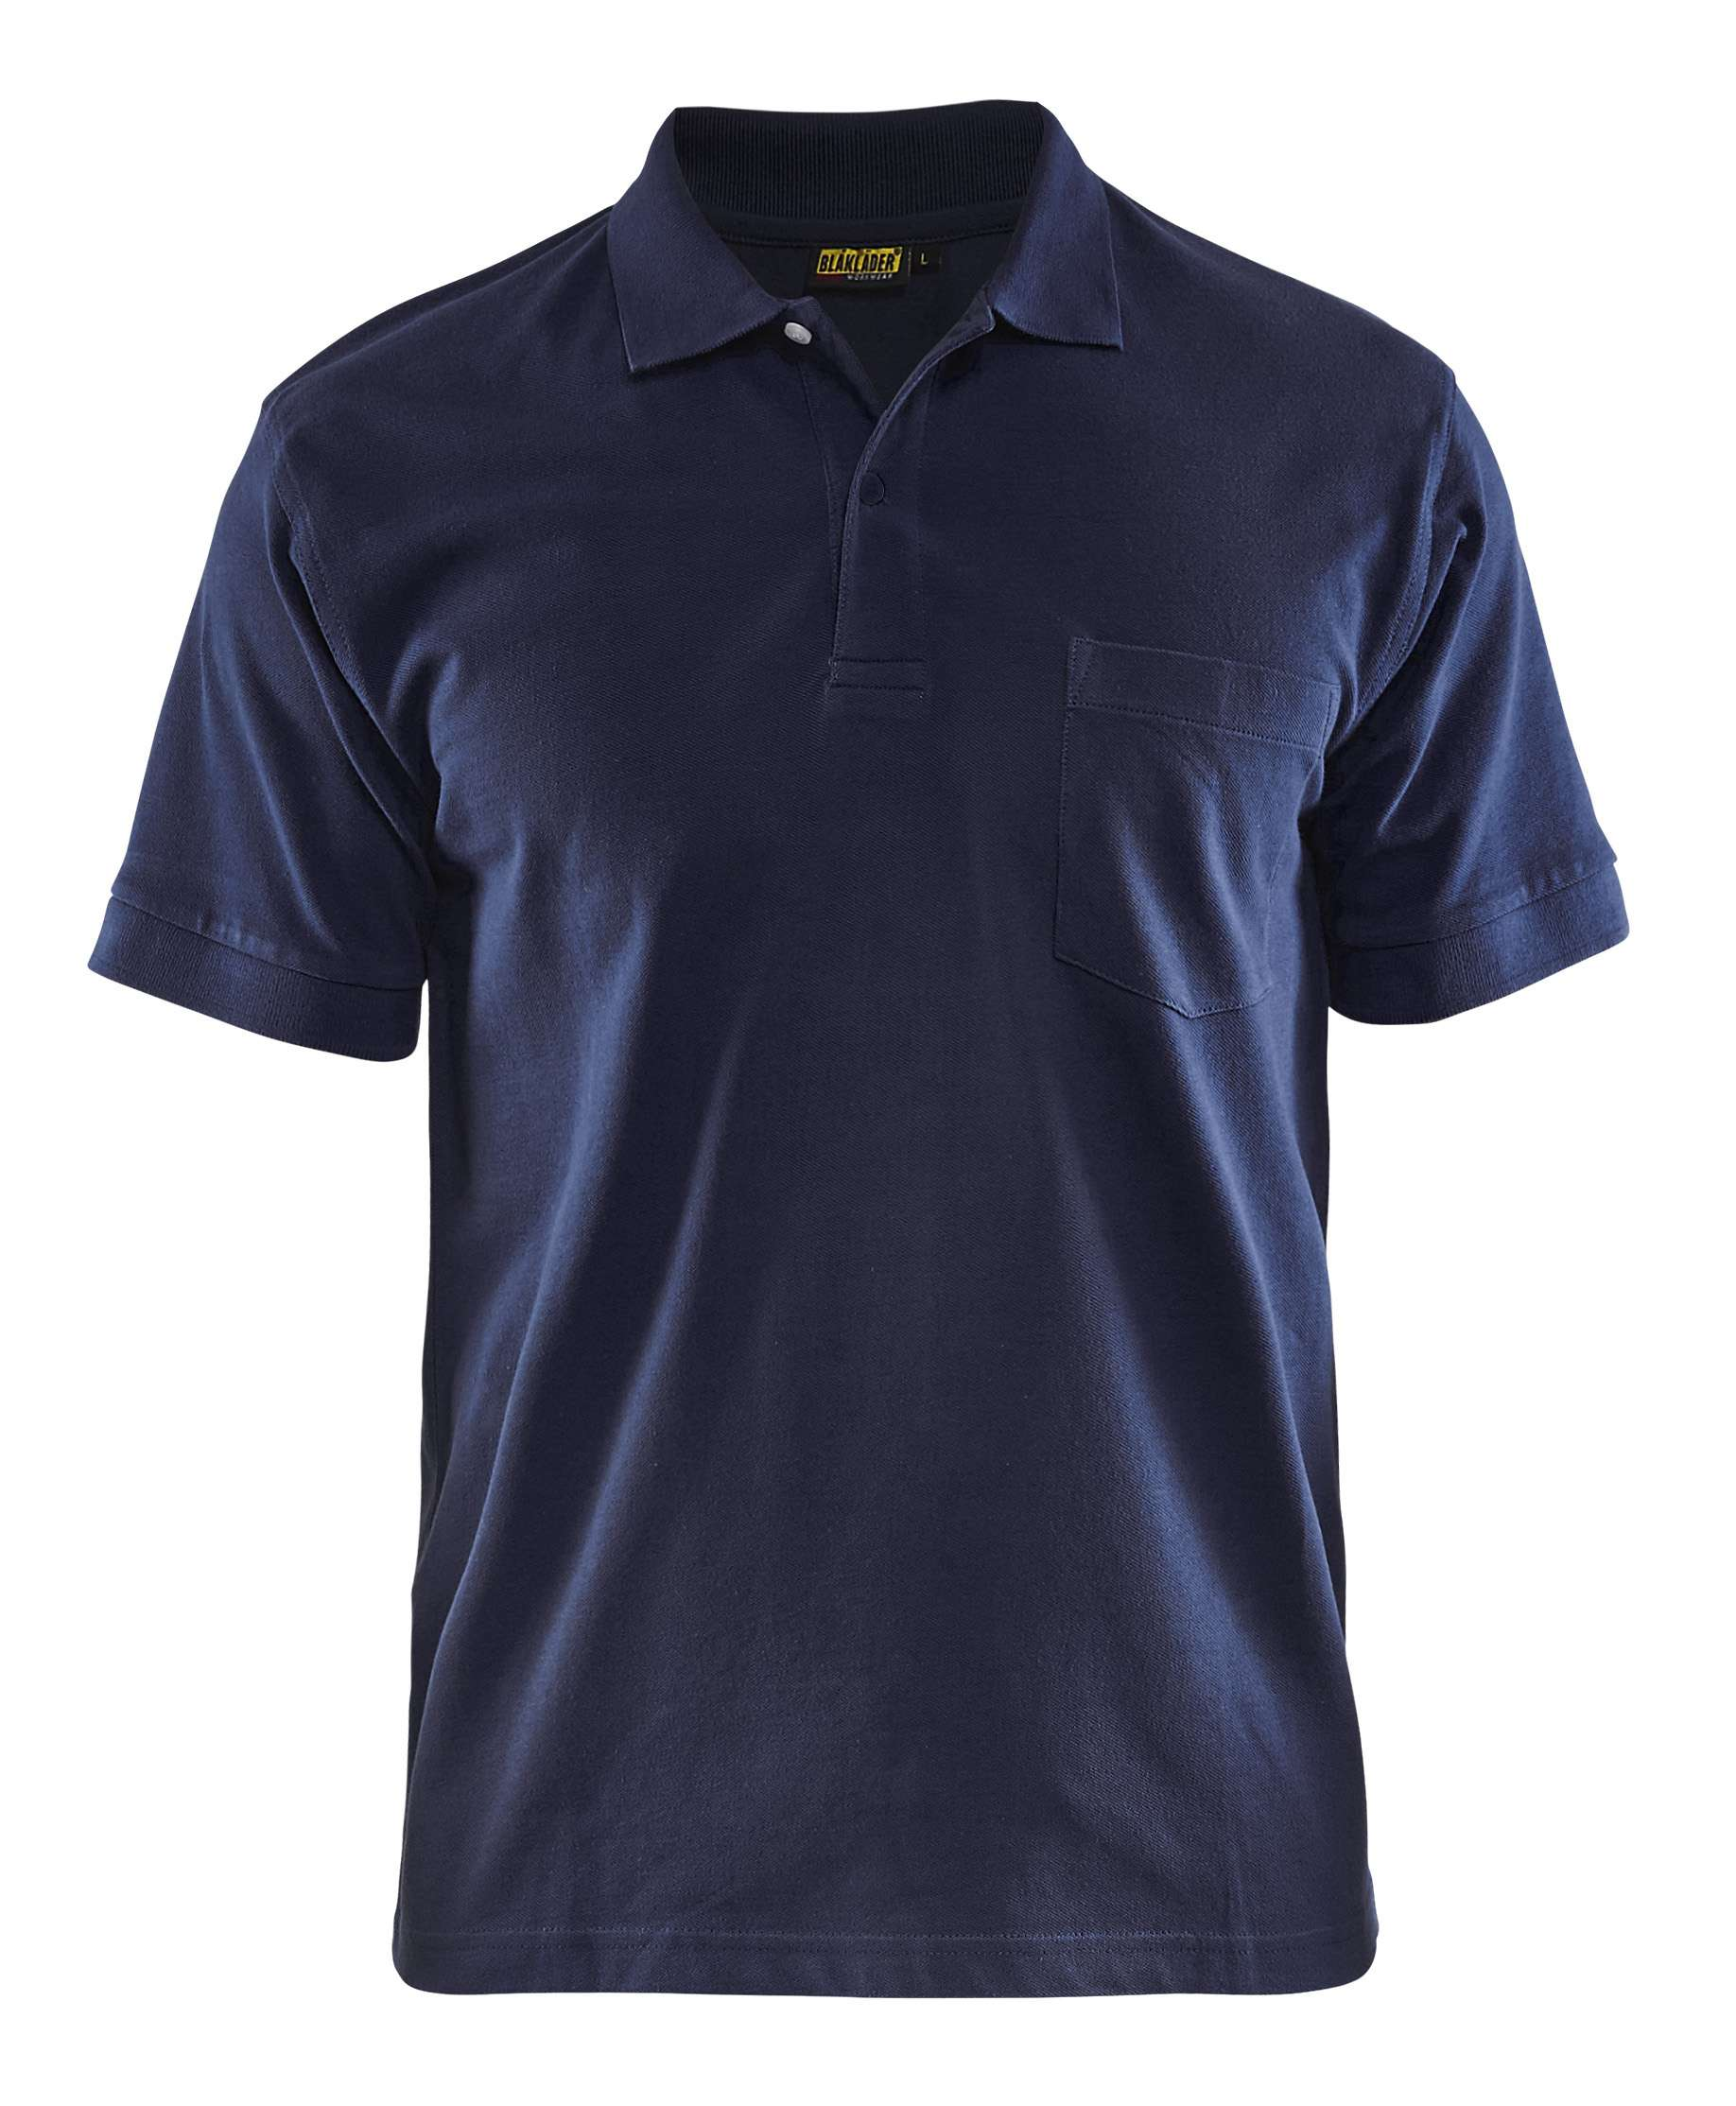 Blaklader Polo shirts 33051035 marineblauw(8800)